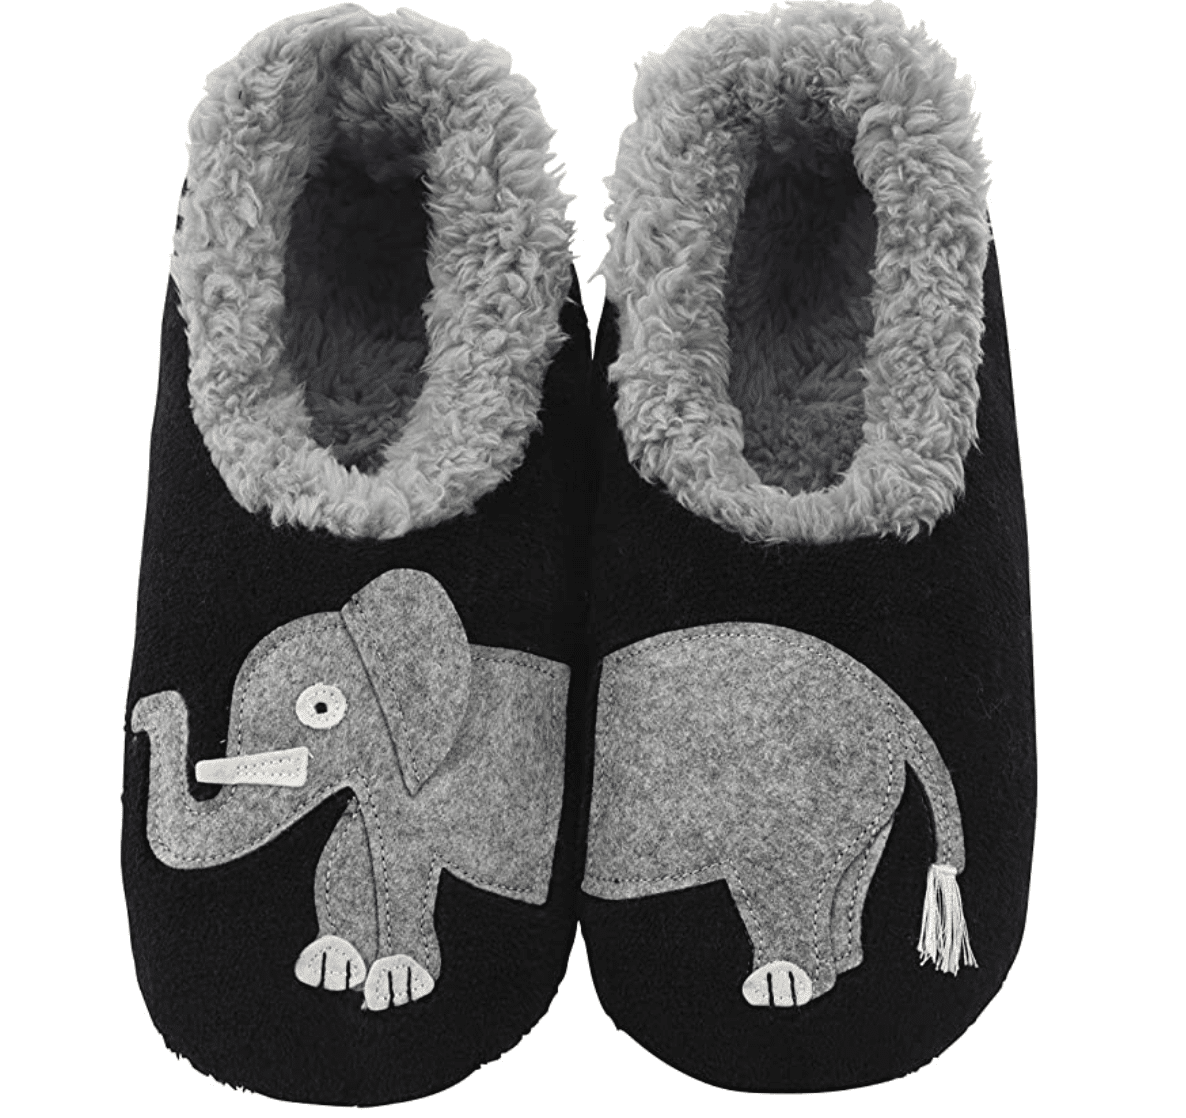 elephant-gifts-slippers